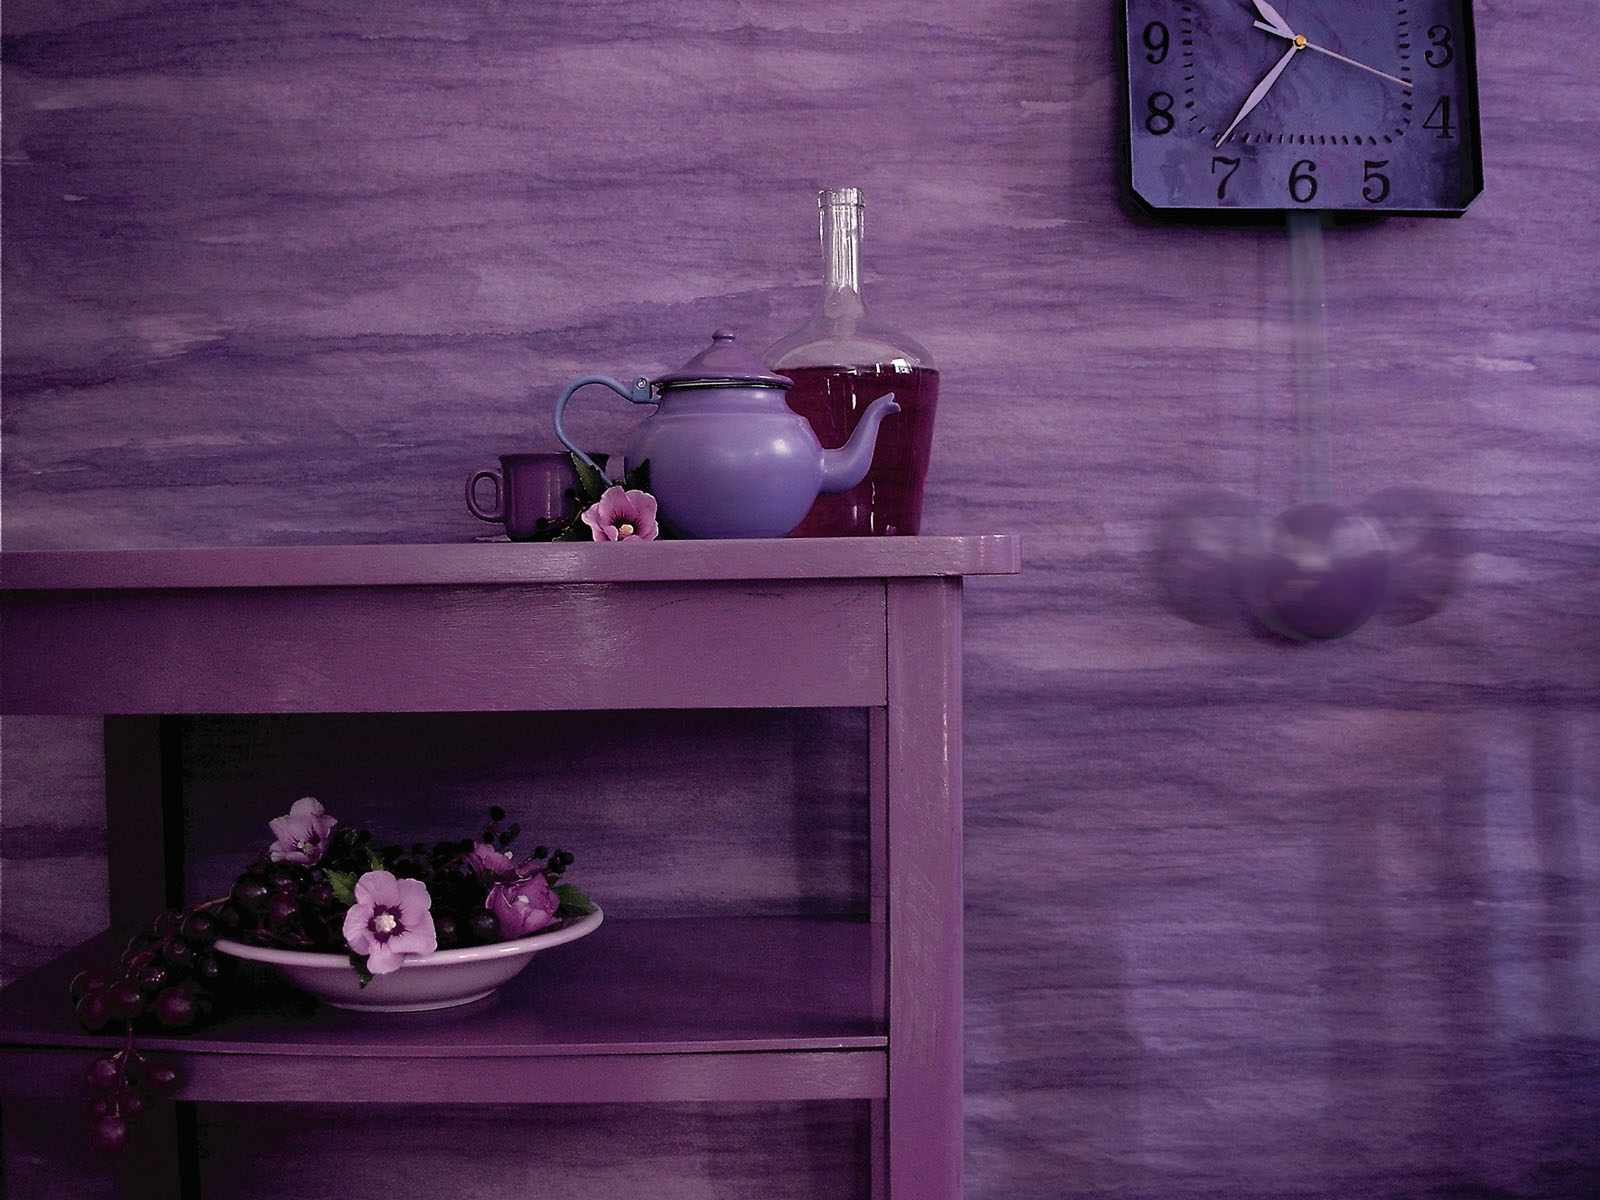 http://4.bp.blogspot.com/_0fvCOMn2z78/TGJp3Ram8OI/AAAAAAAAD_c/UD0AM4mhzBs/s1600/Wallpaper.+Purple+Room.jpg